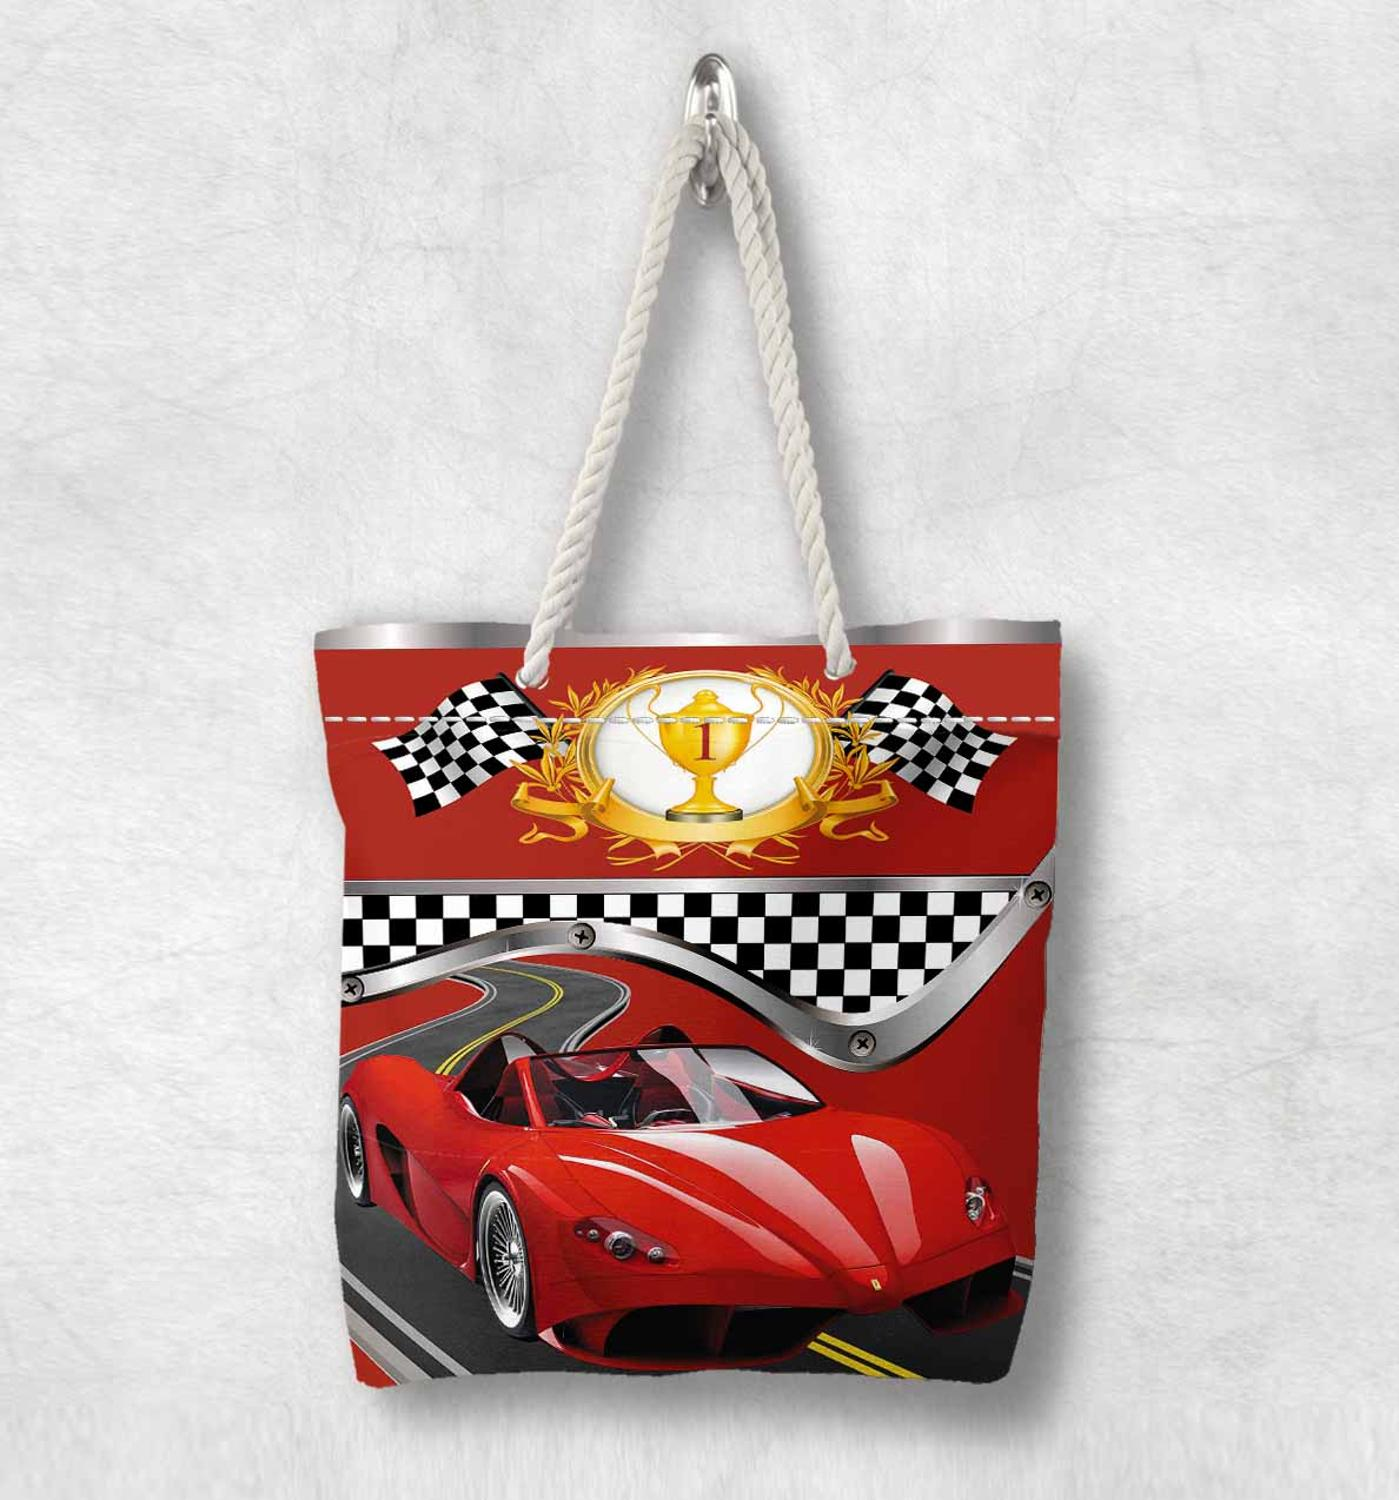 Else Red Sport Car Race Flag New Fashion White Rope Handle Canvas Bag  Cartoon Print Zippered Tote Bag Shoulder Bag